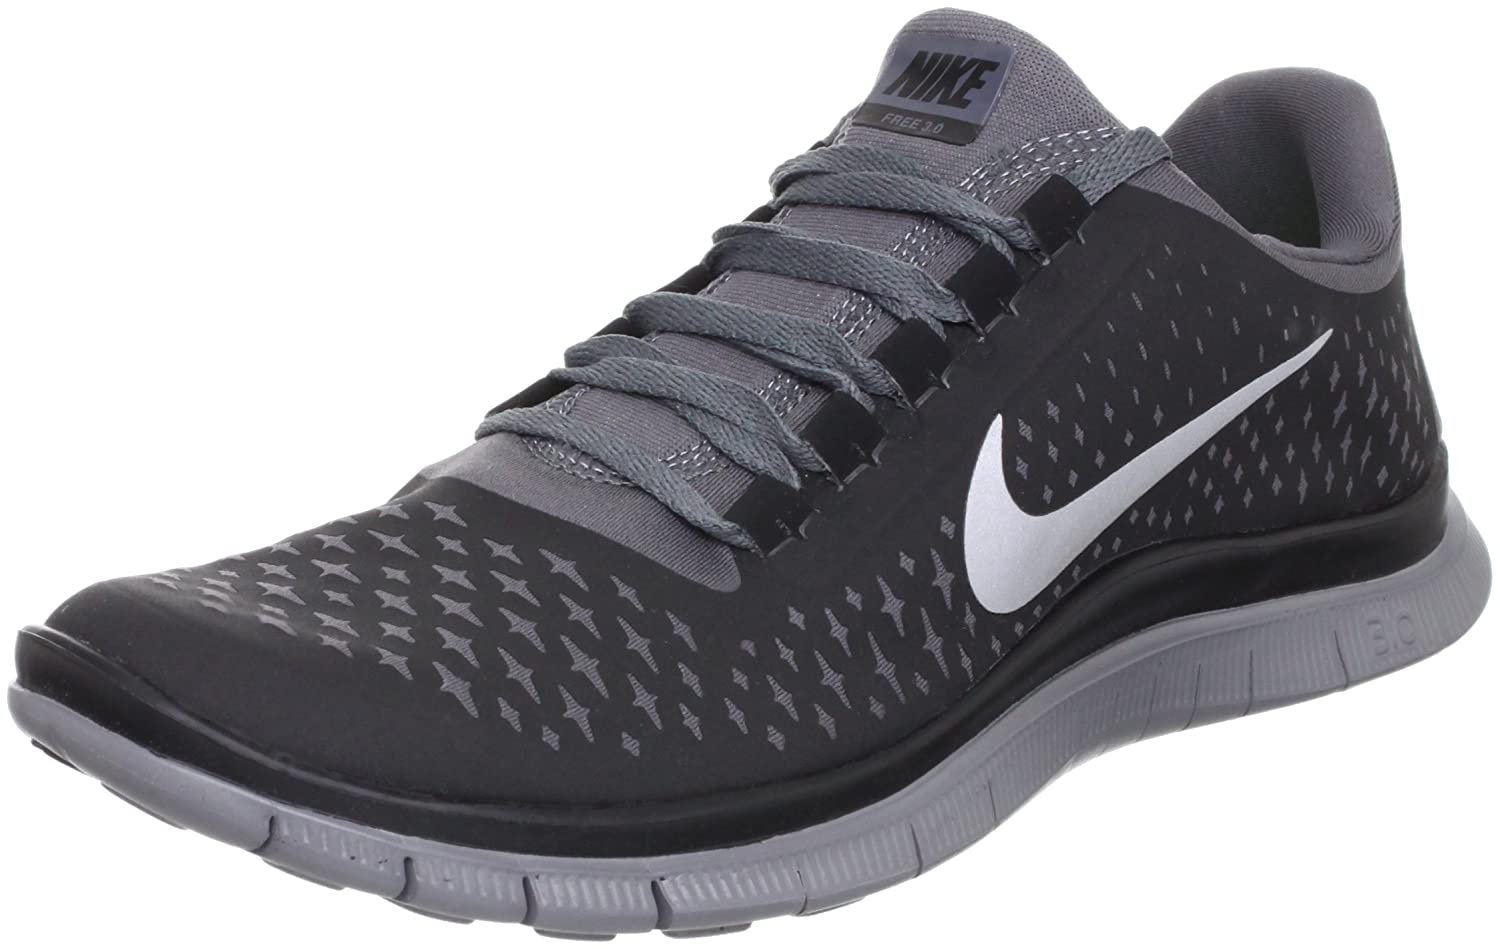 quality design 11267 3e230 Amazon.com   Nike Free 3.0 V4 Running Shoes - 12.5 - Black   Running